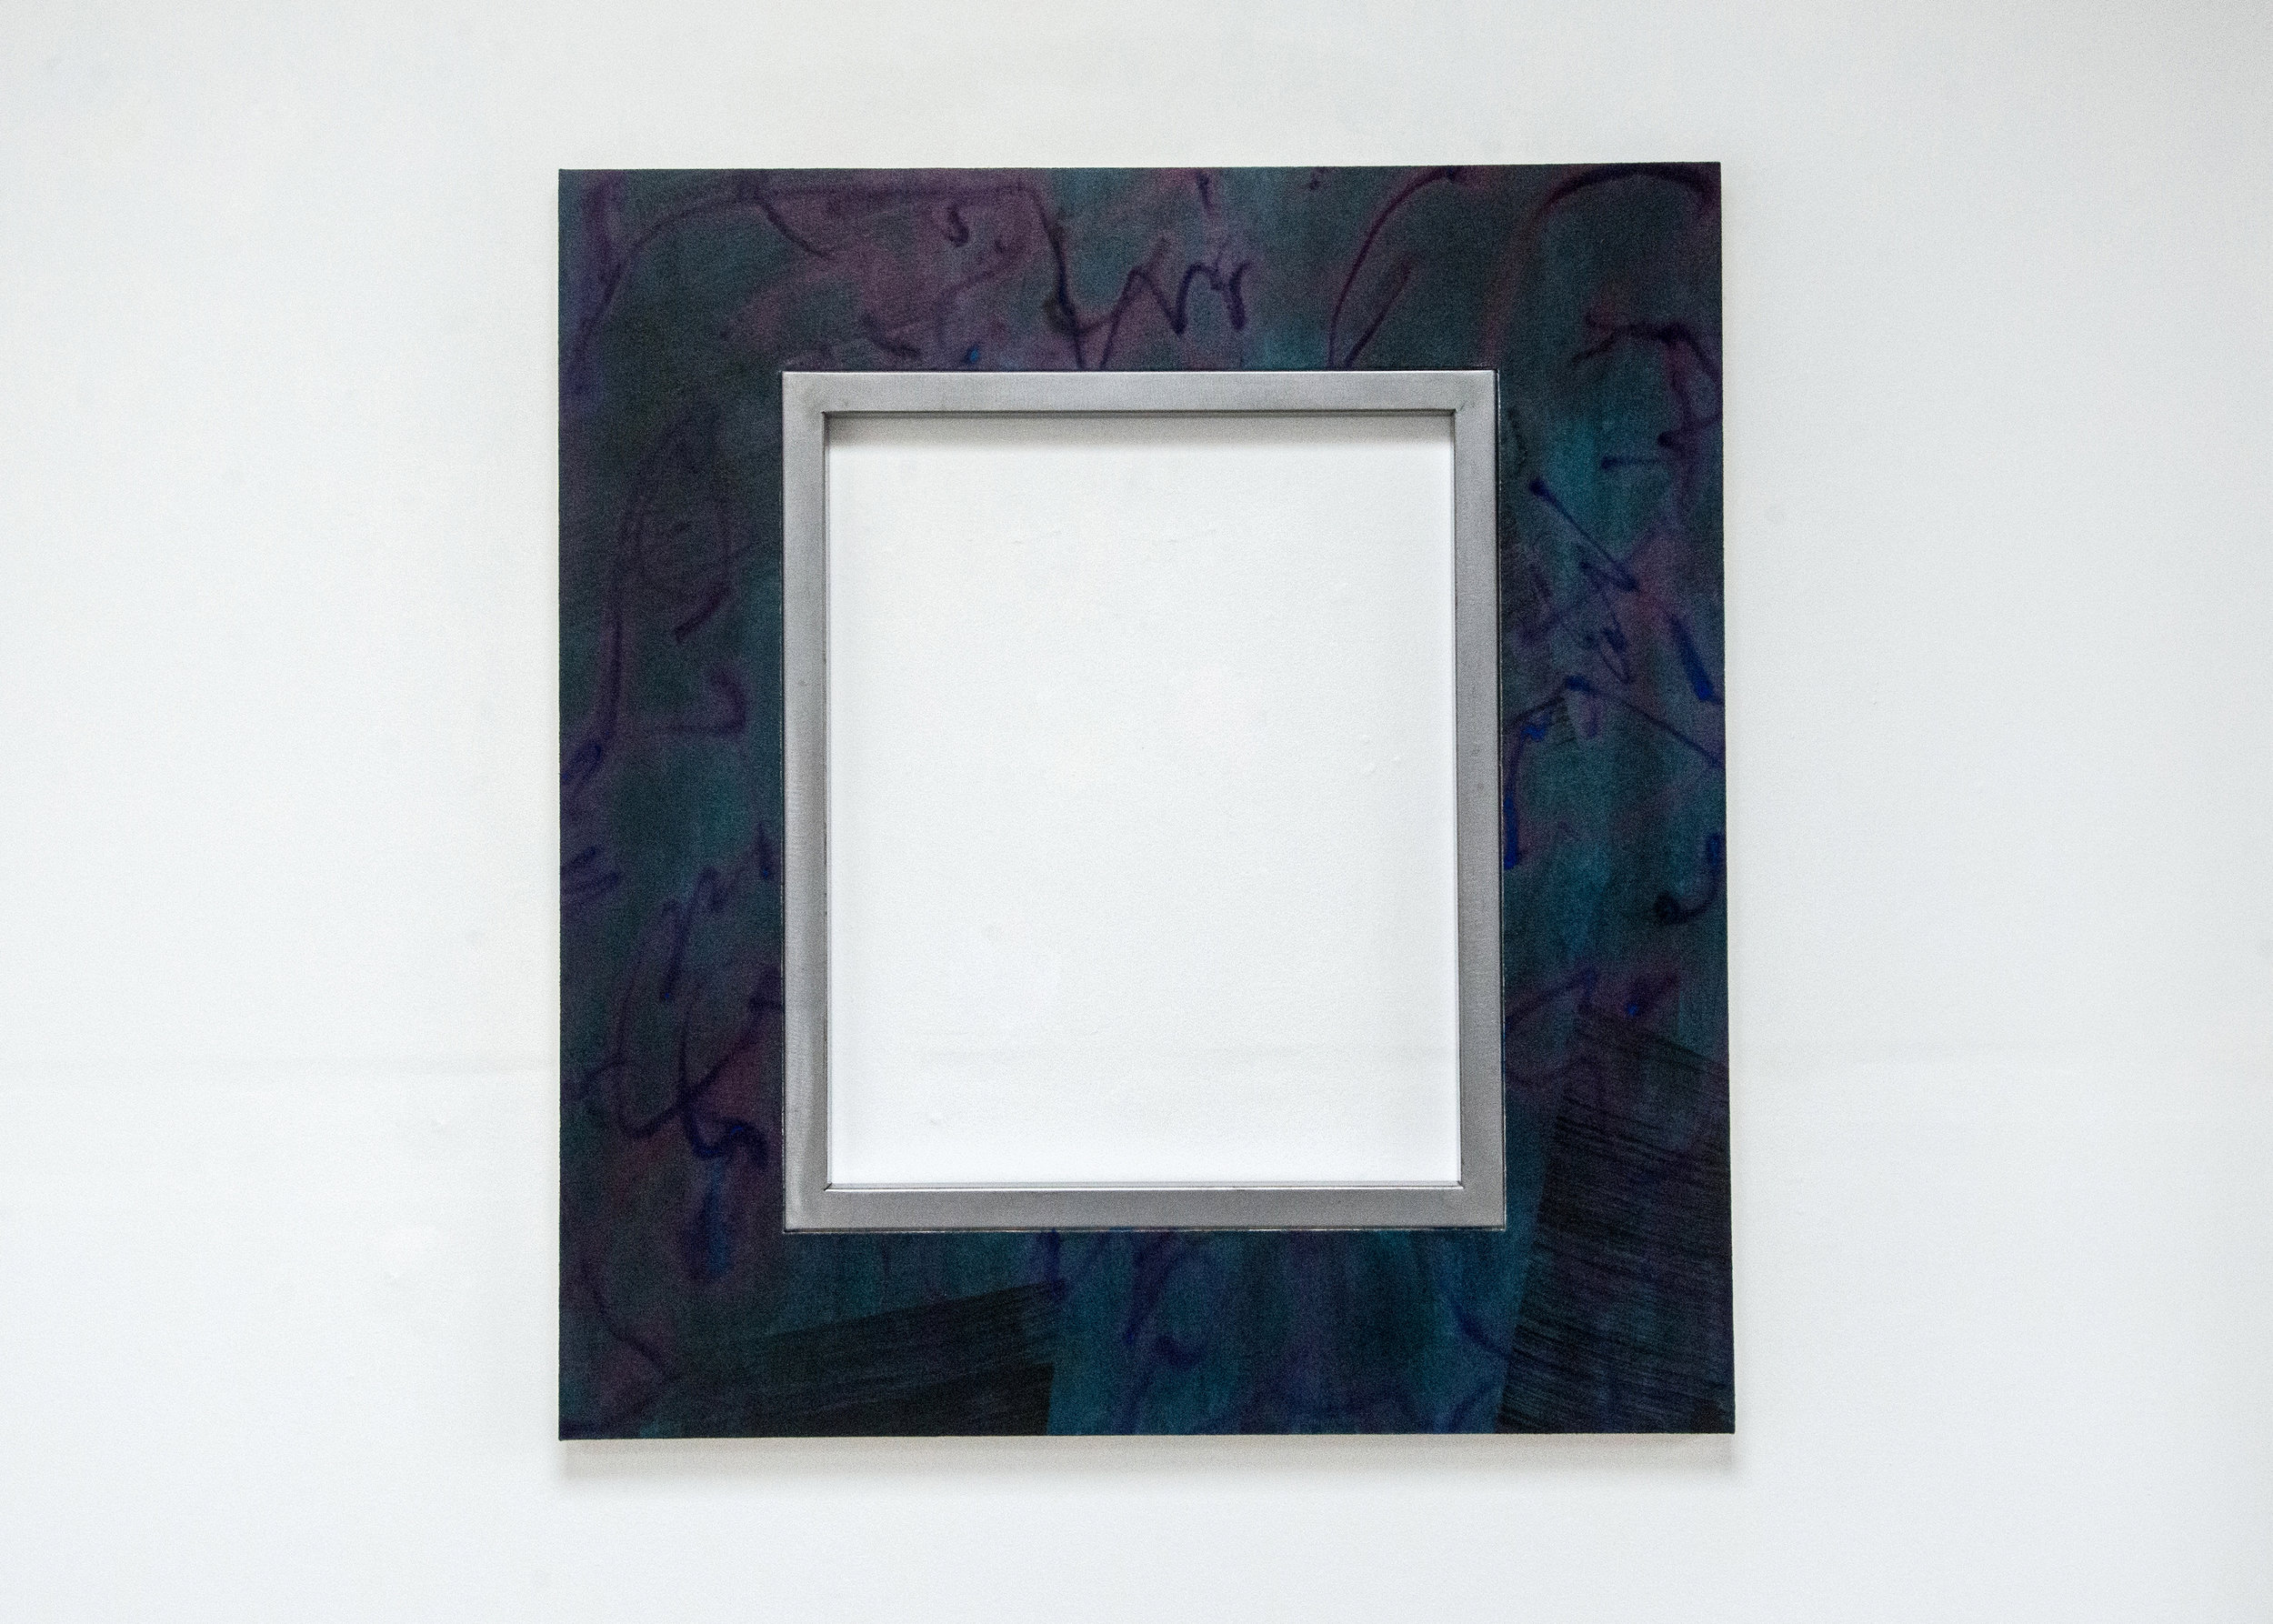 Lana Williams,  Blind Vibrations , 2018. Acrylic, smoke pigment on canvas, steel frame. 44 1/8 x 40 5/8 inches